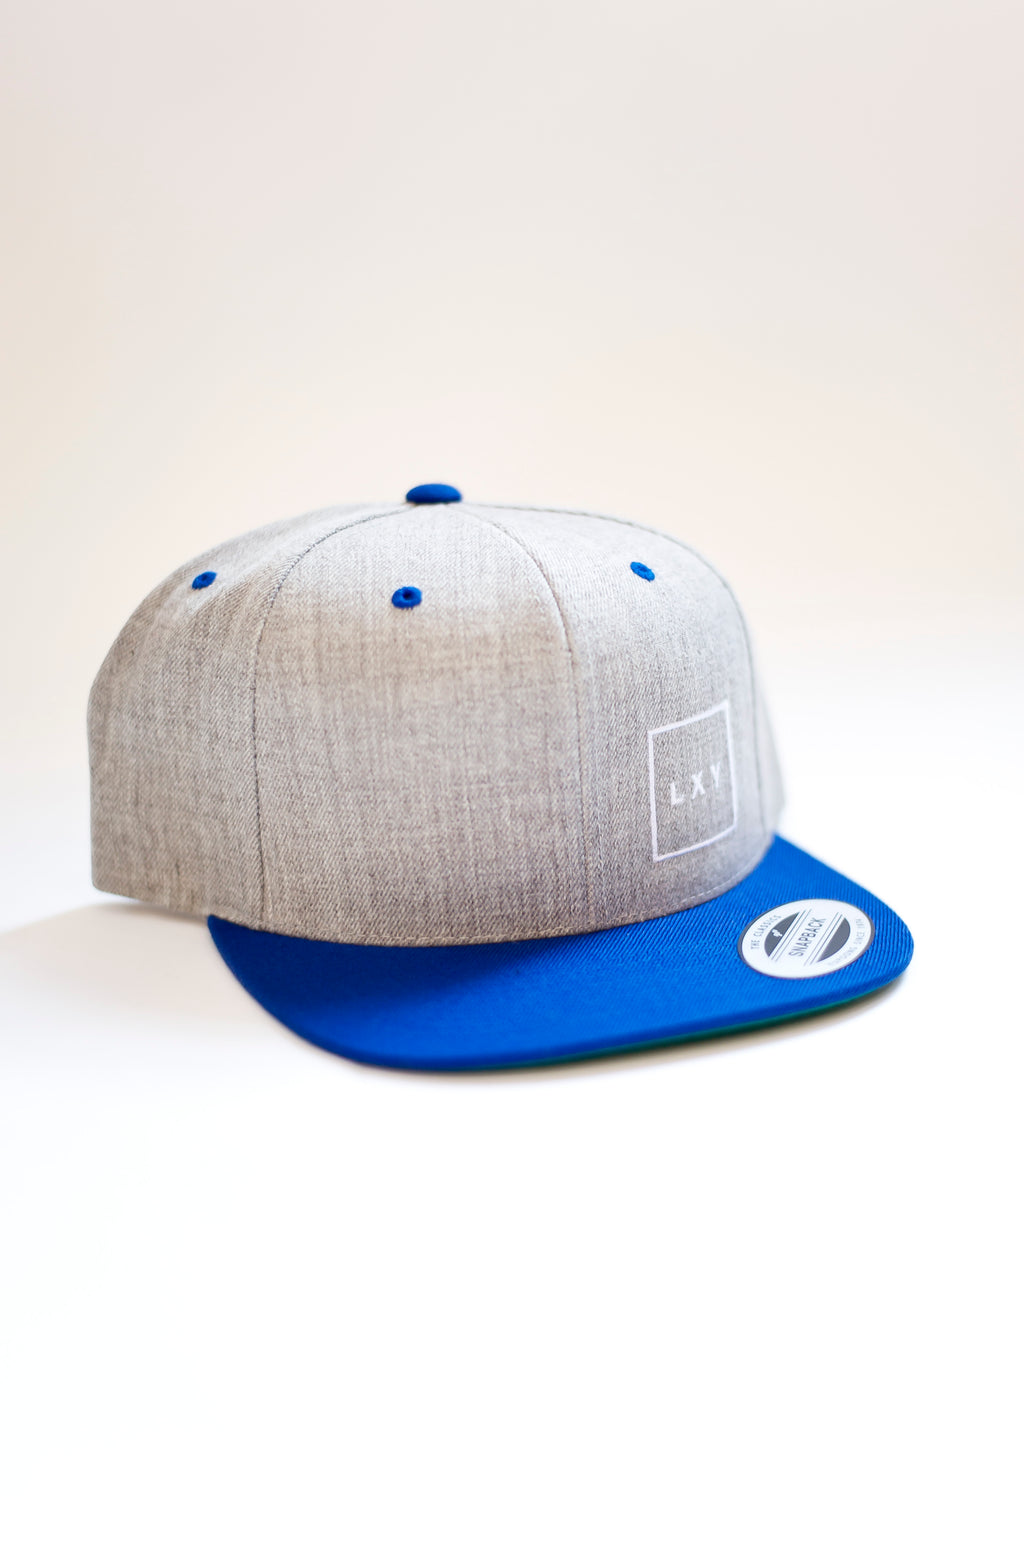 square cap snapback heather/blue